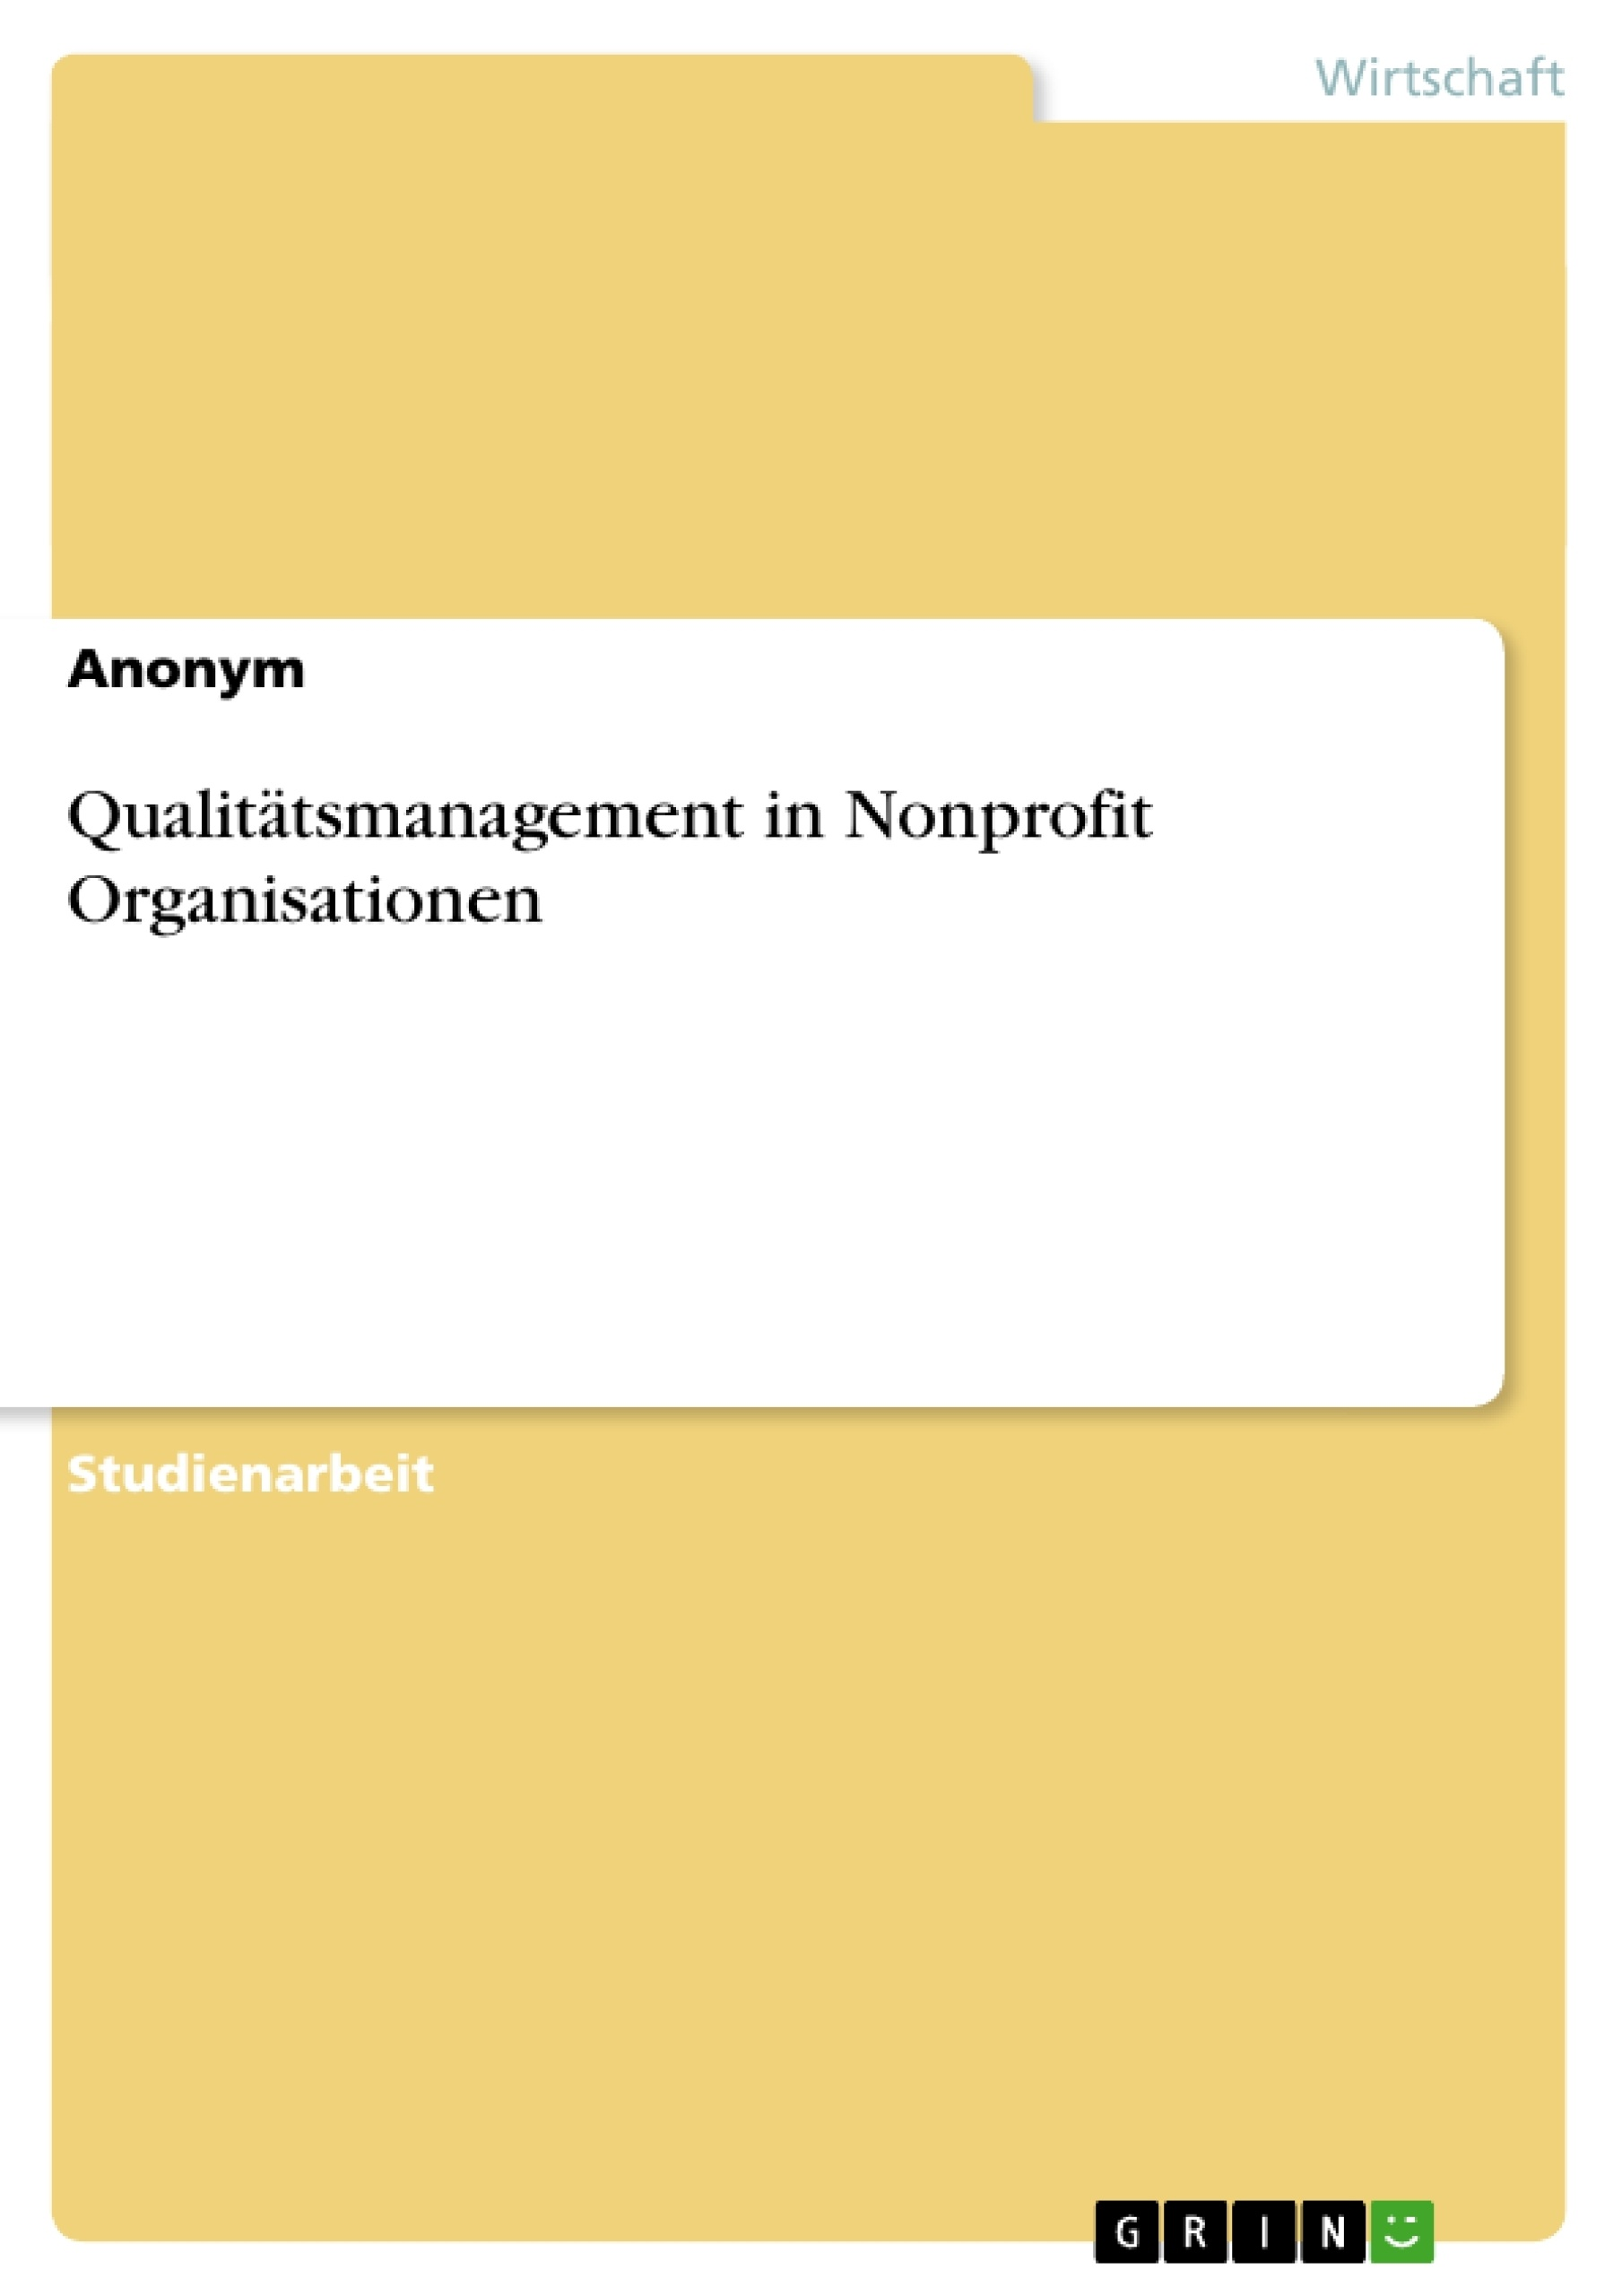 Titel: Qualitätsmanagement in Nonprofit Organisationen